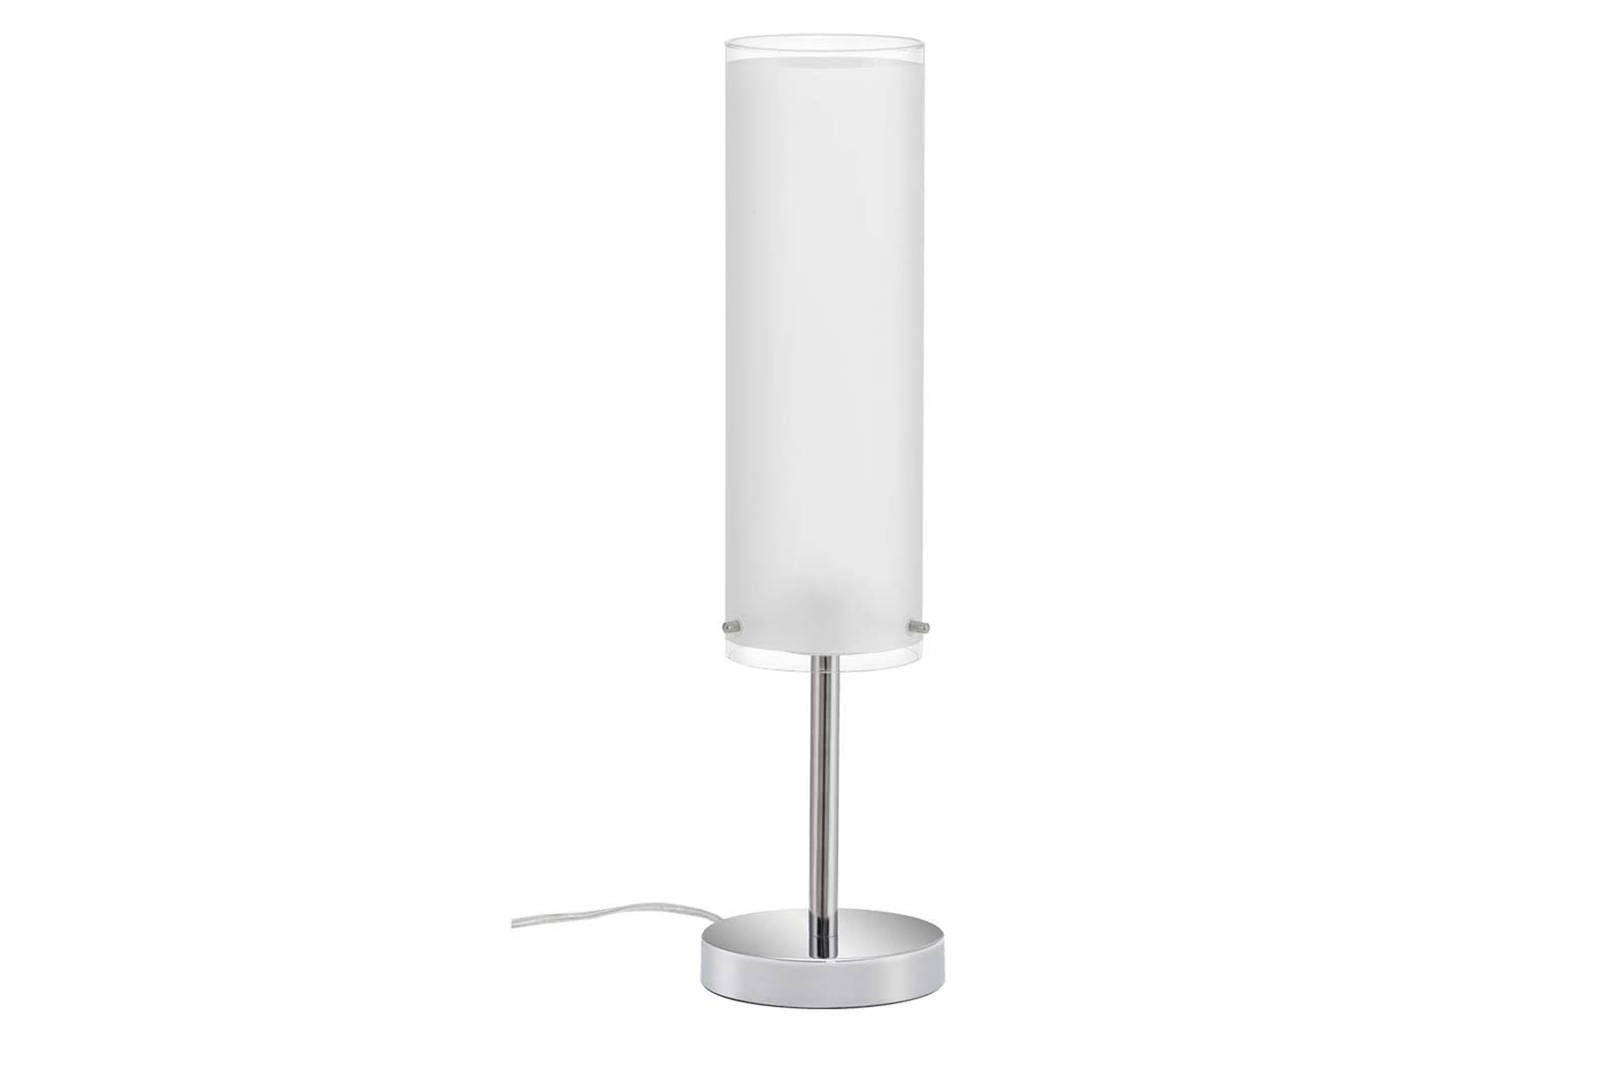 Briloner 7350-018 LED Dimmable Table Lamp